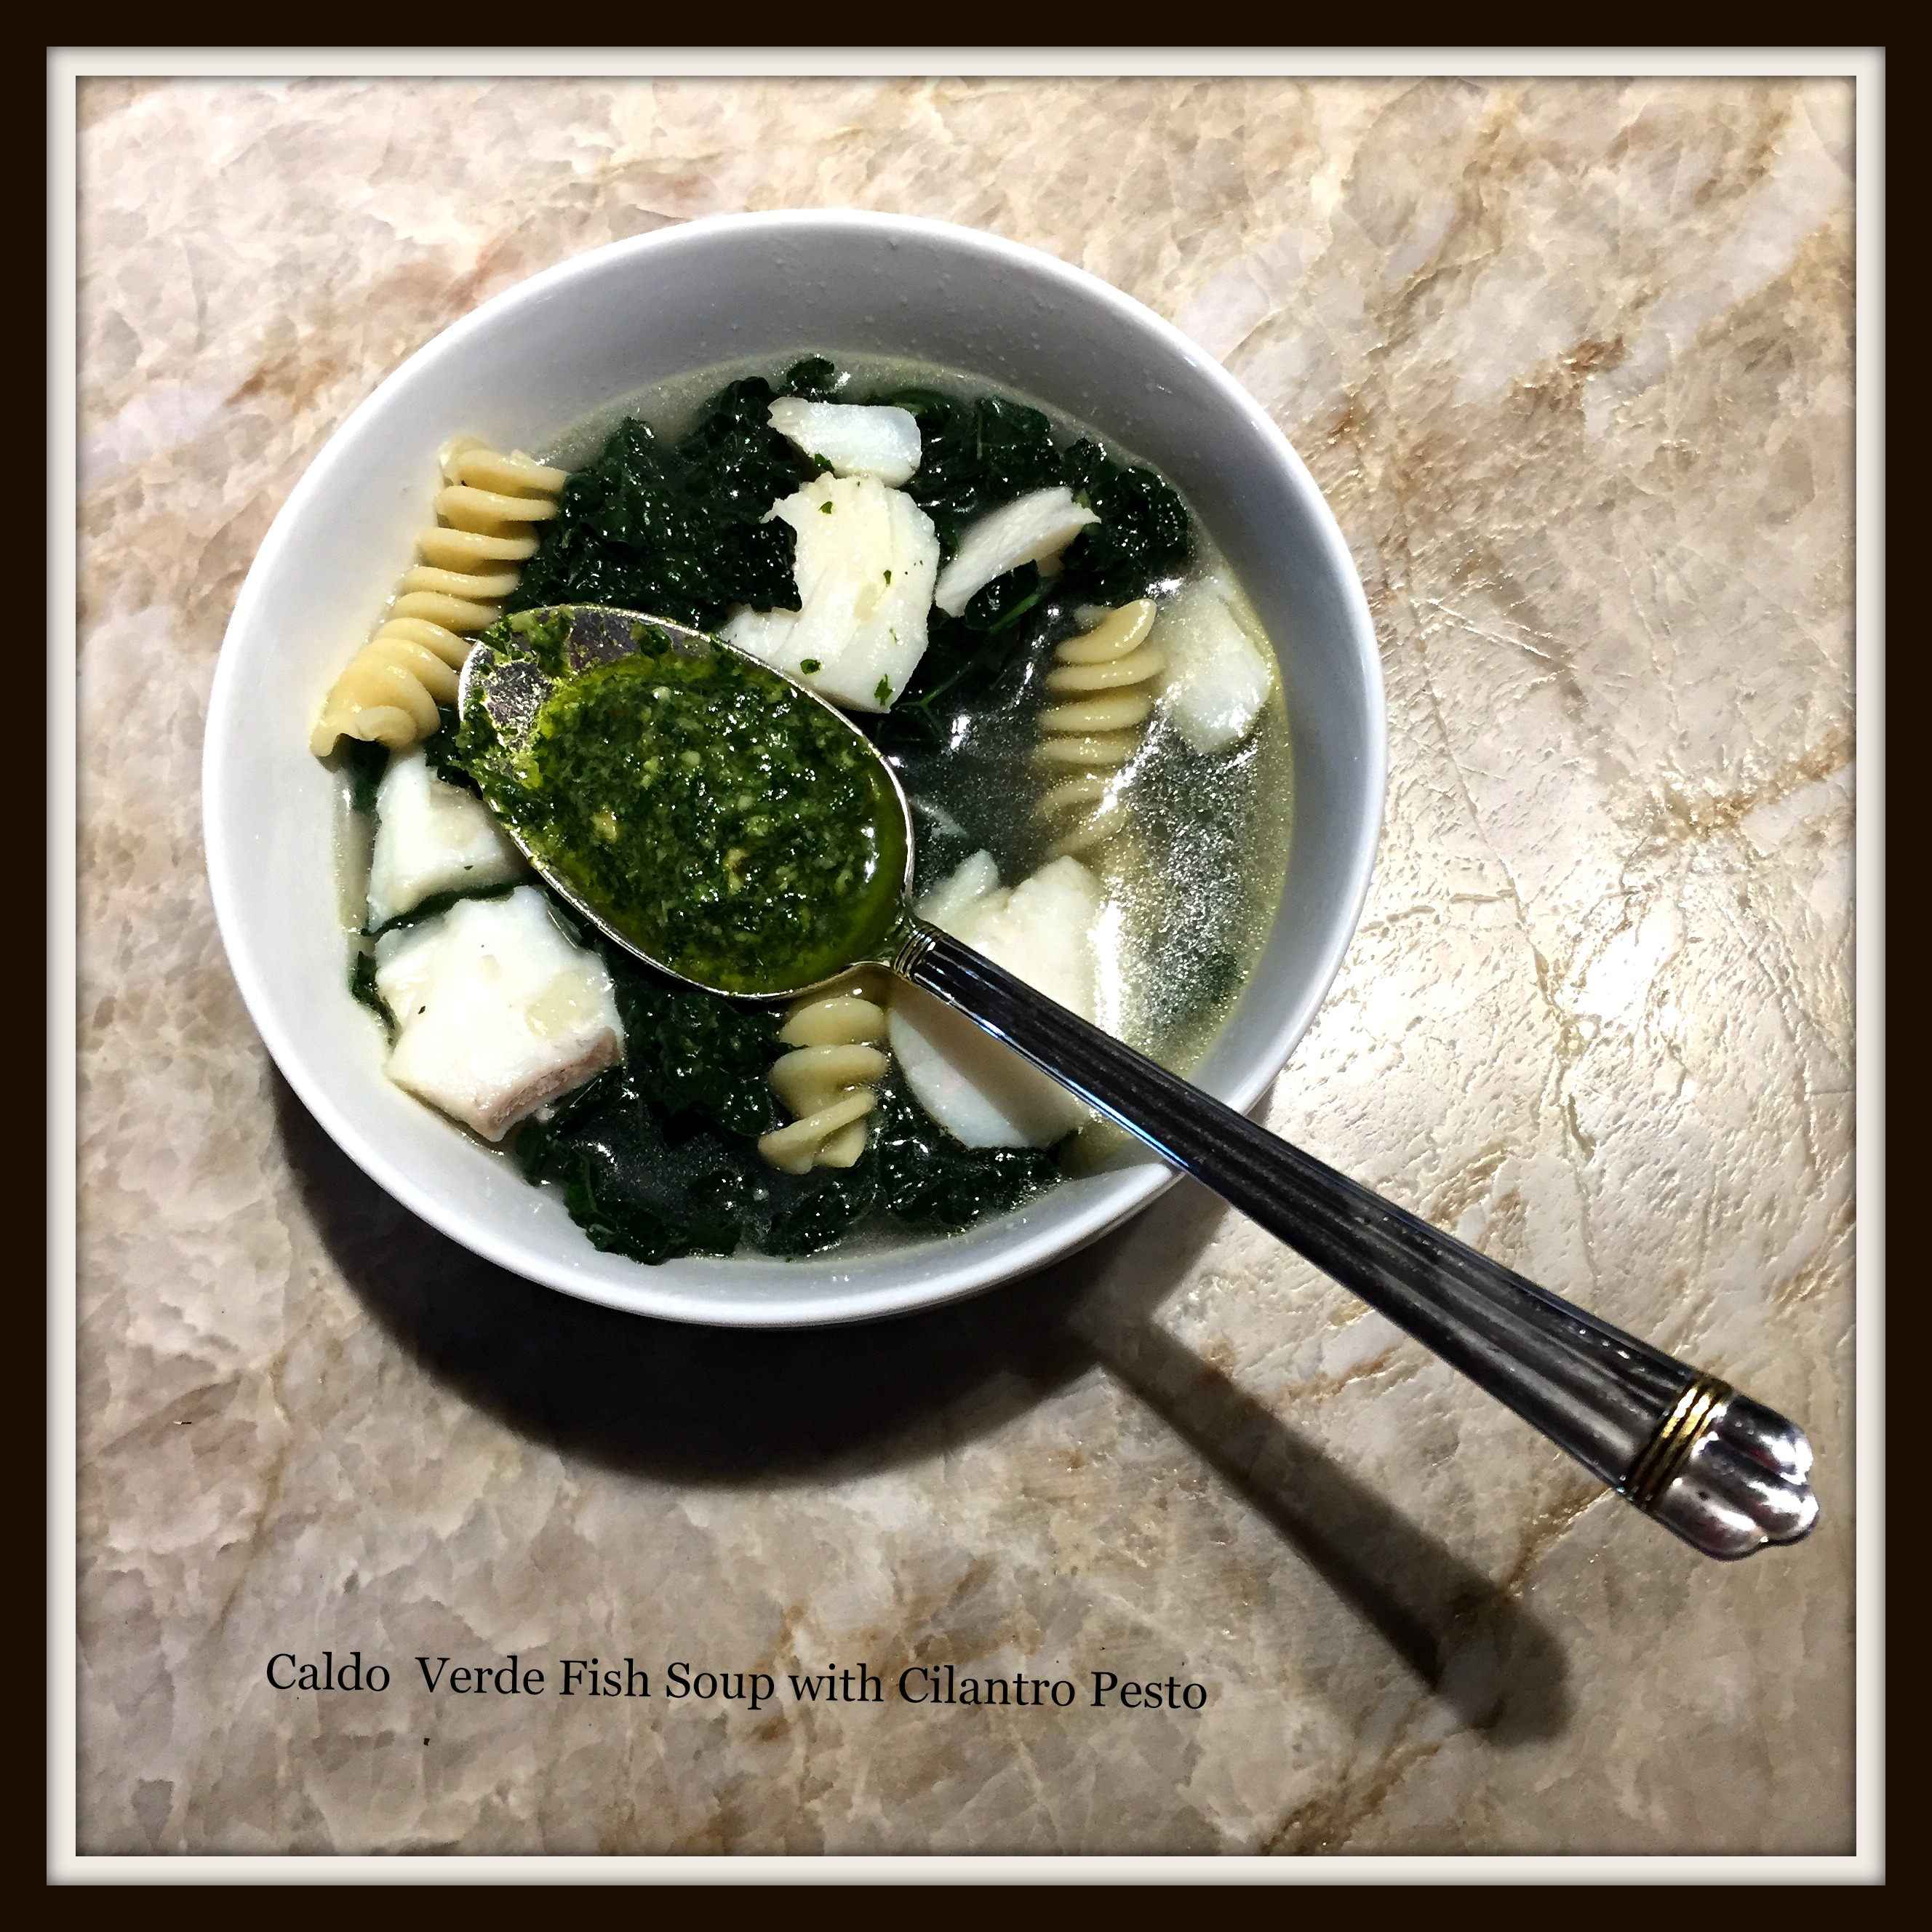 Caldo Verde with Fish and Cilantro Pesto